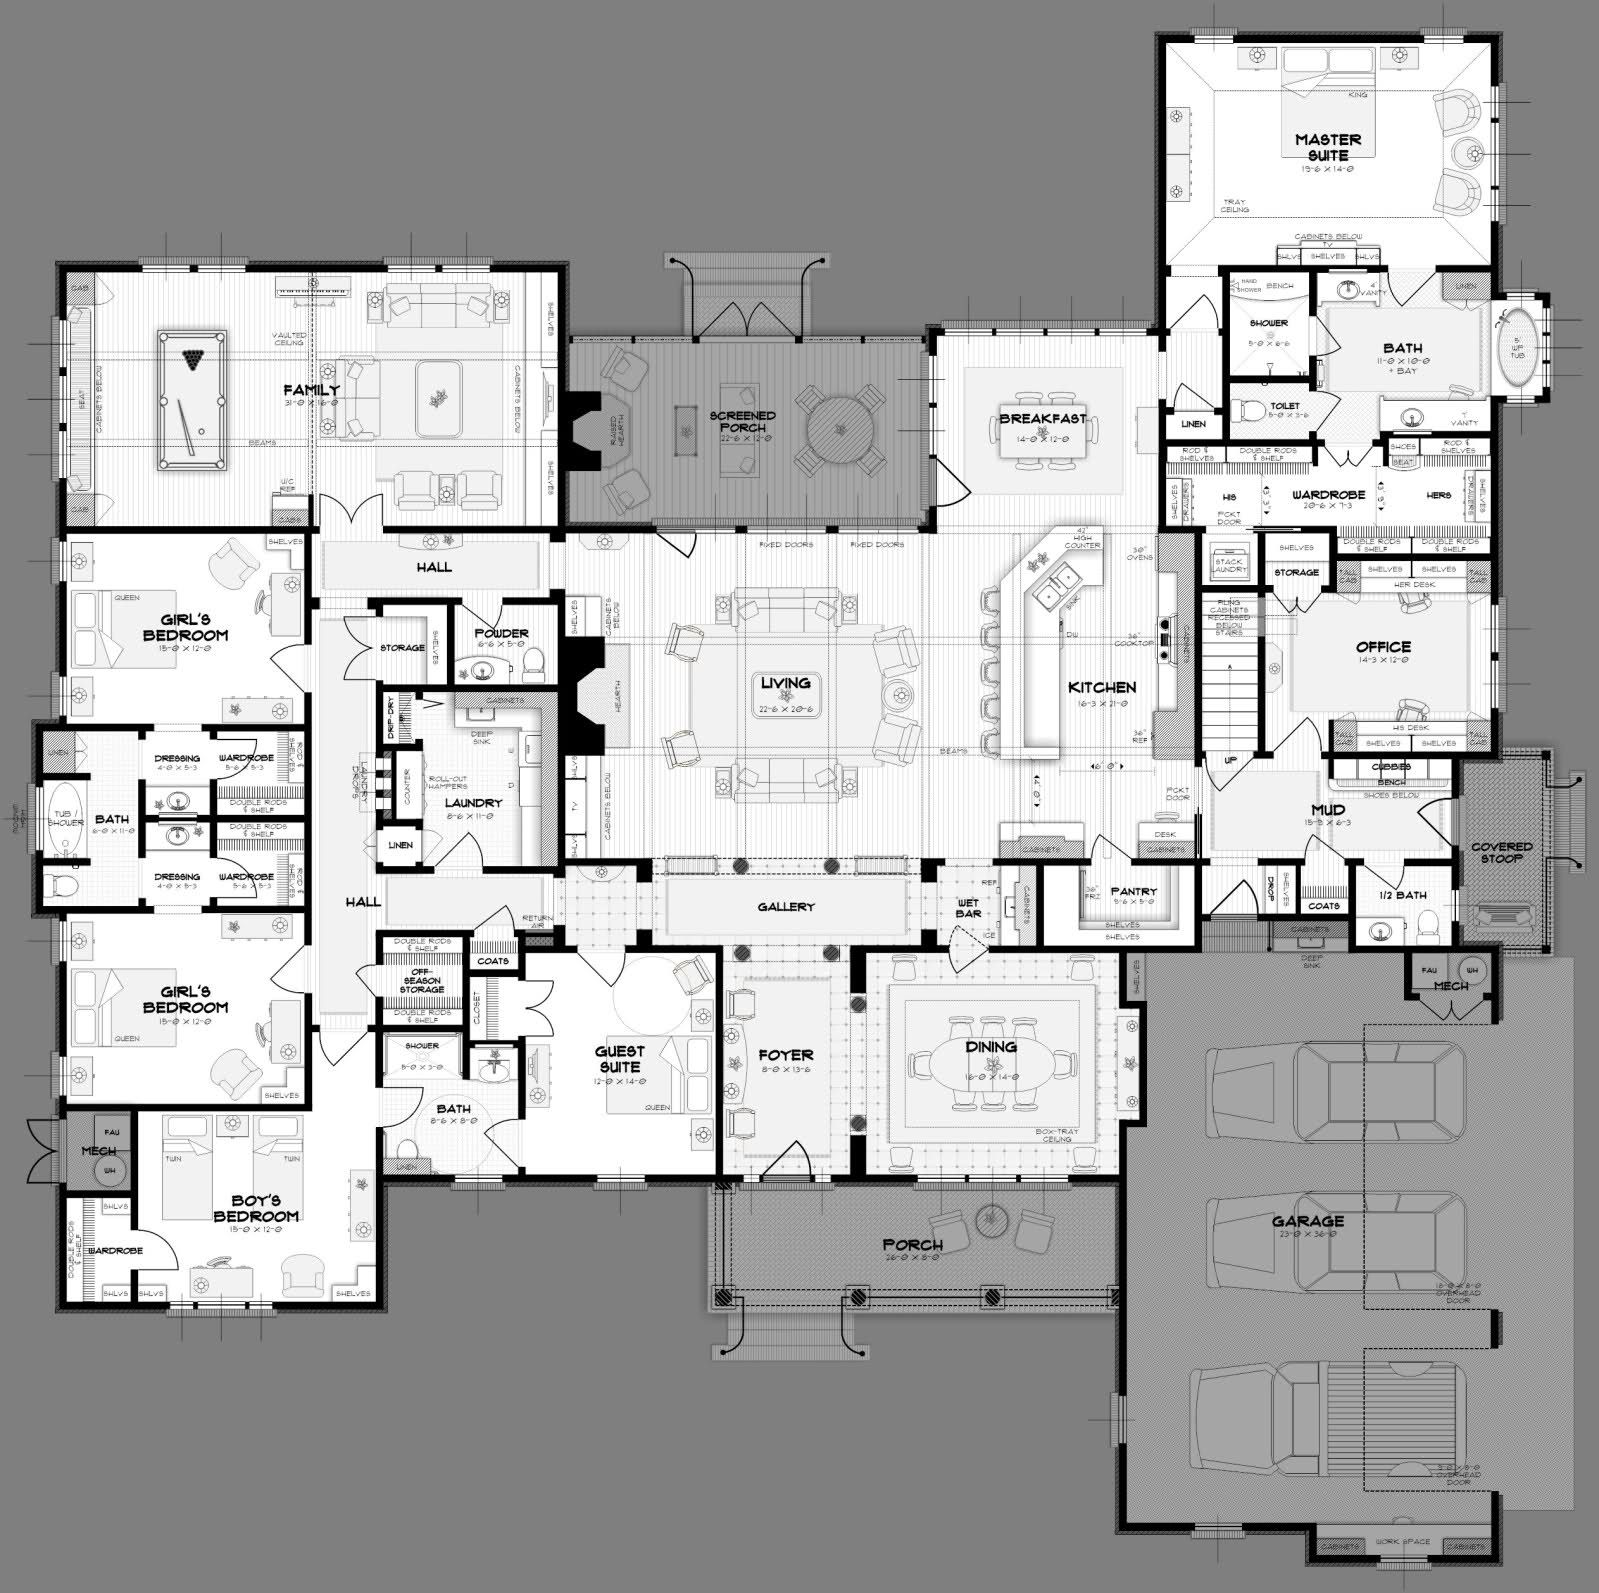 big 5 bedroom house plans | my plans - help needed with bedroom